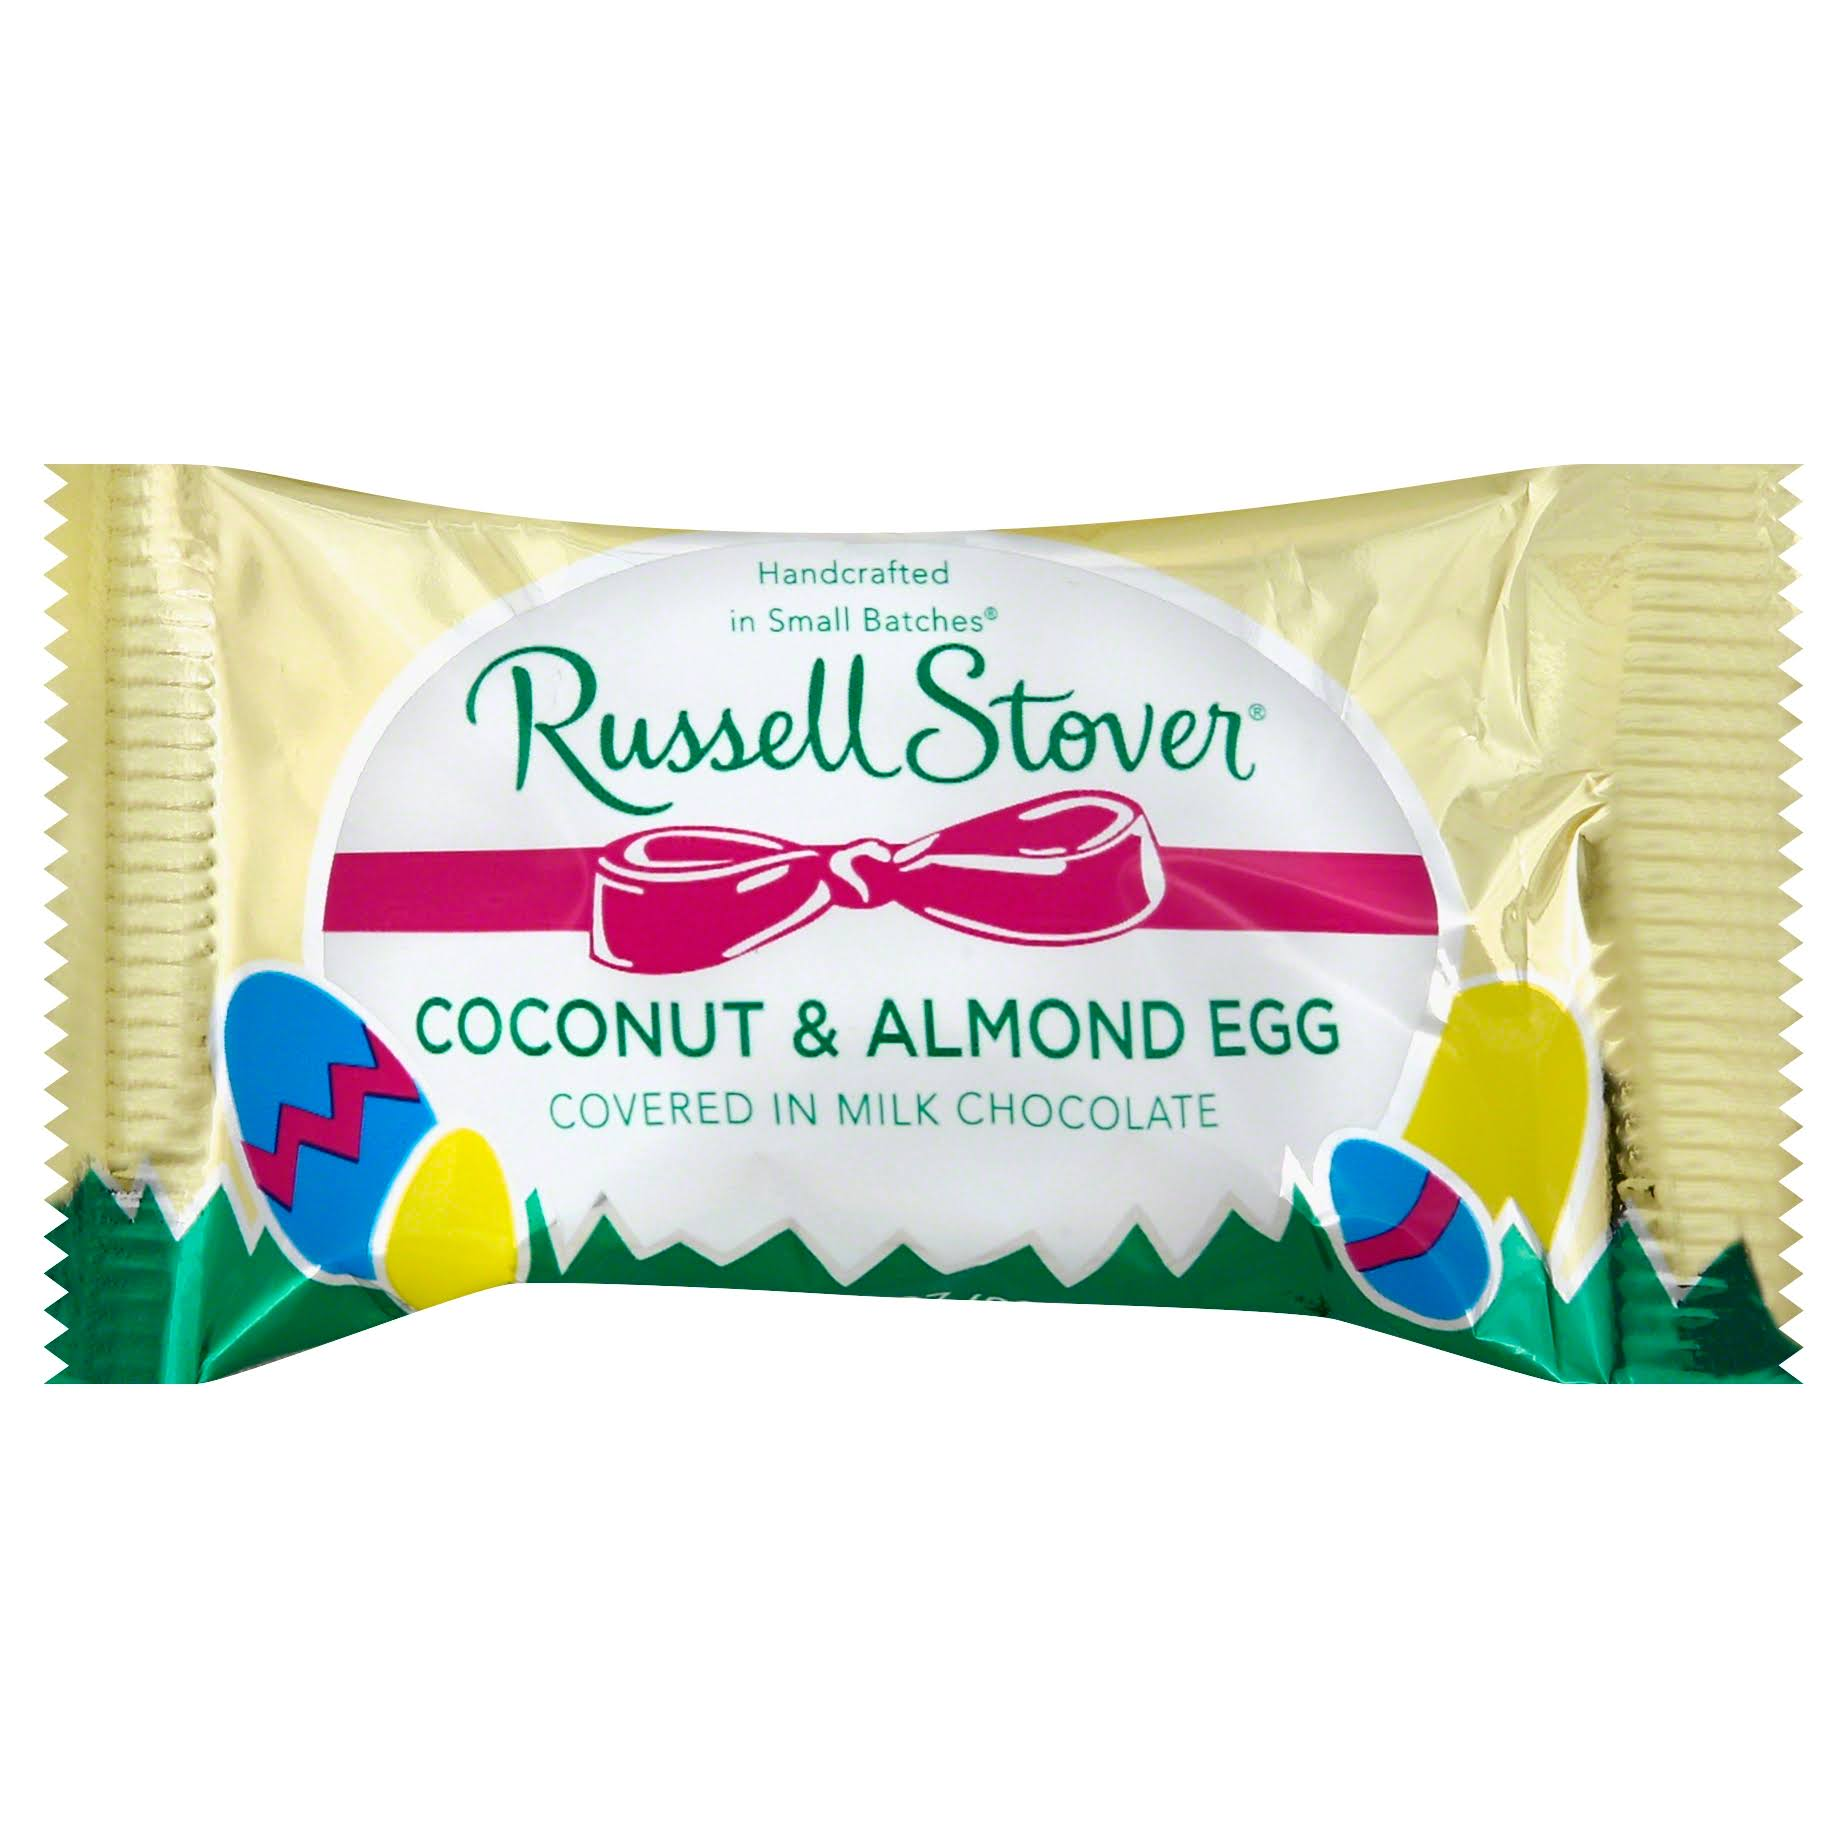 Russell Stover Egg, Coconut & Almond - 1 oz